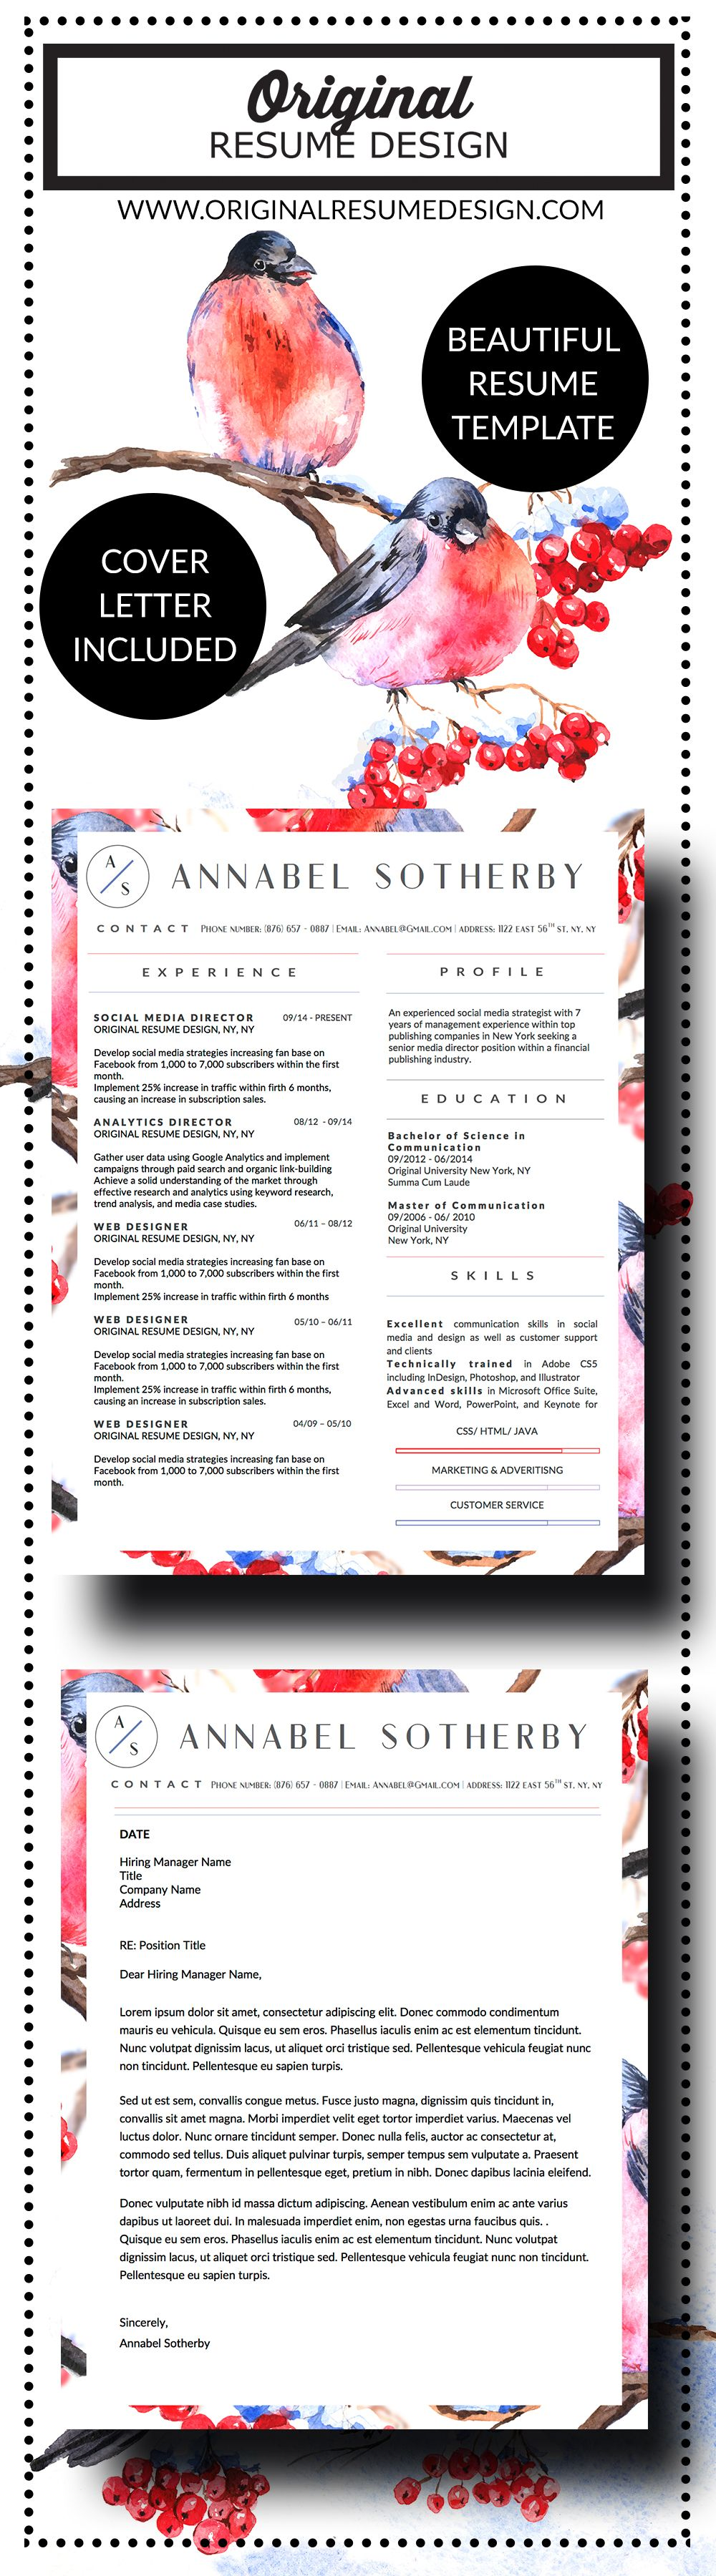 Beautiful resume template for MS Word by Original Resume Design ...